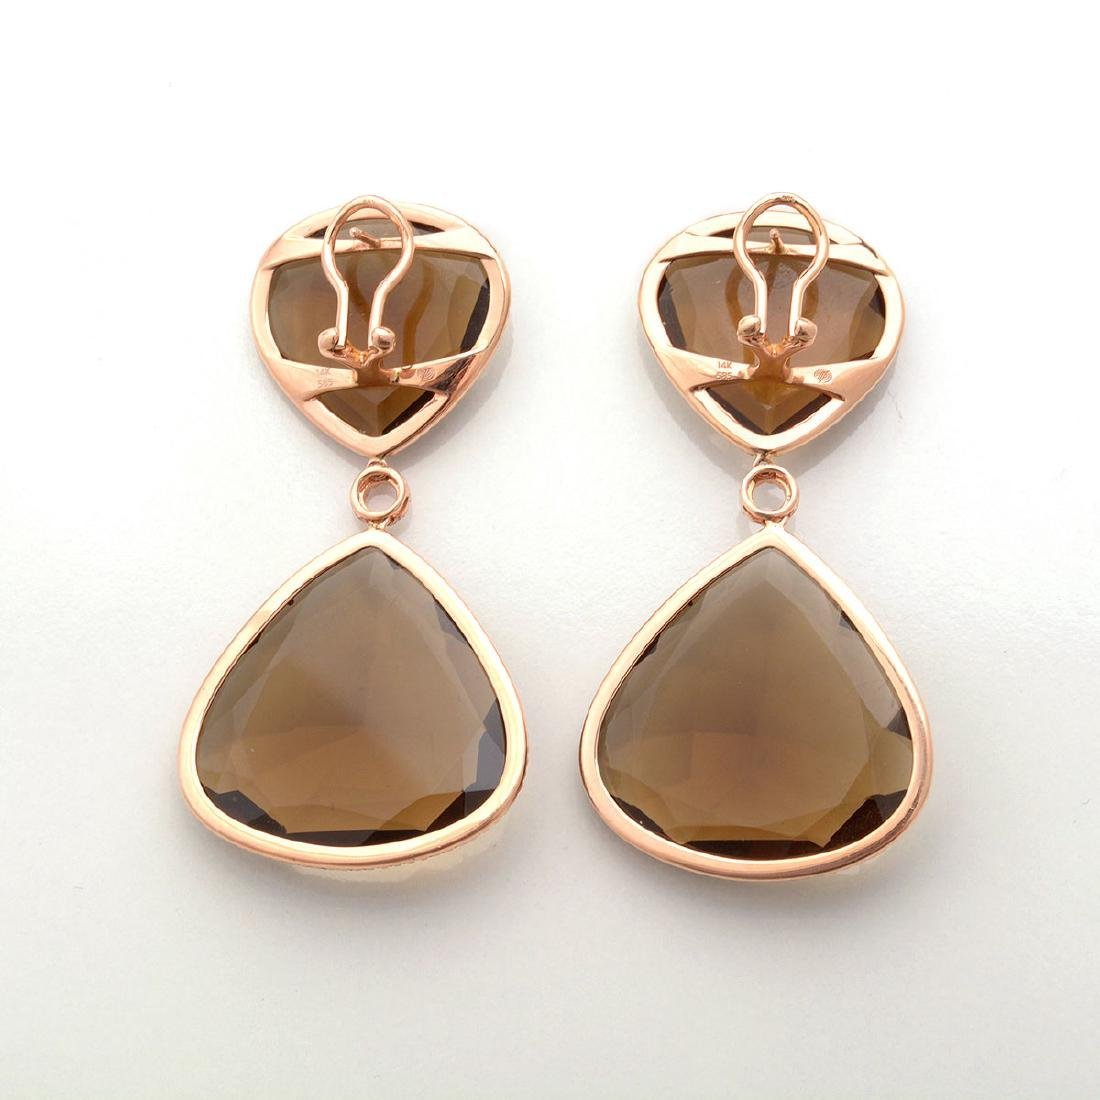 Pair of Smoky Quartz, Diamond, 14k Rose Gold Earrings. - 3